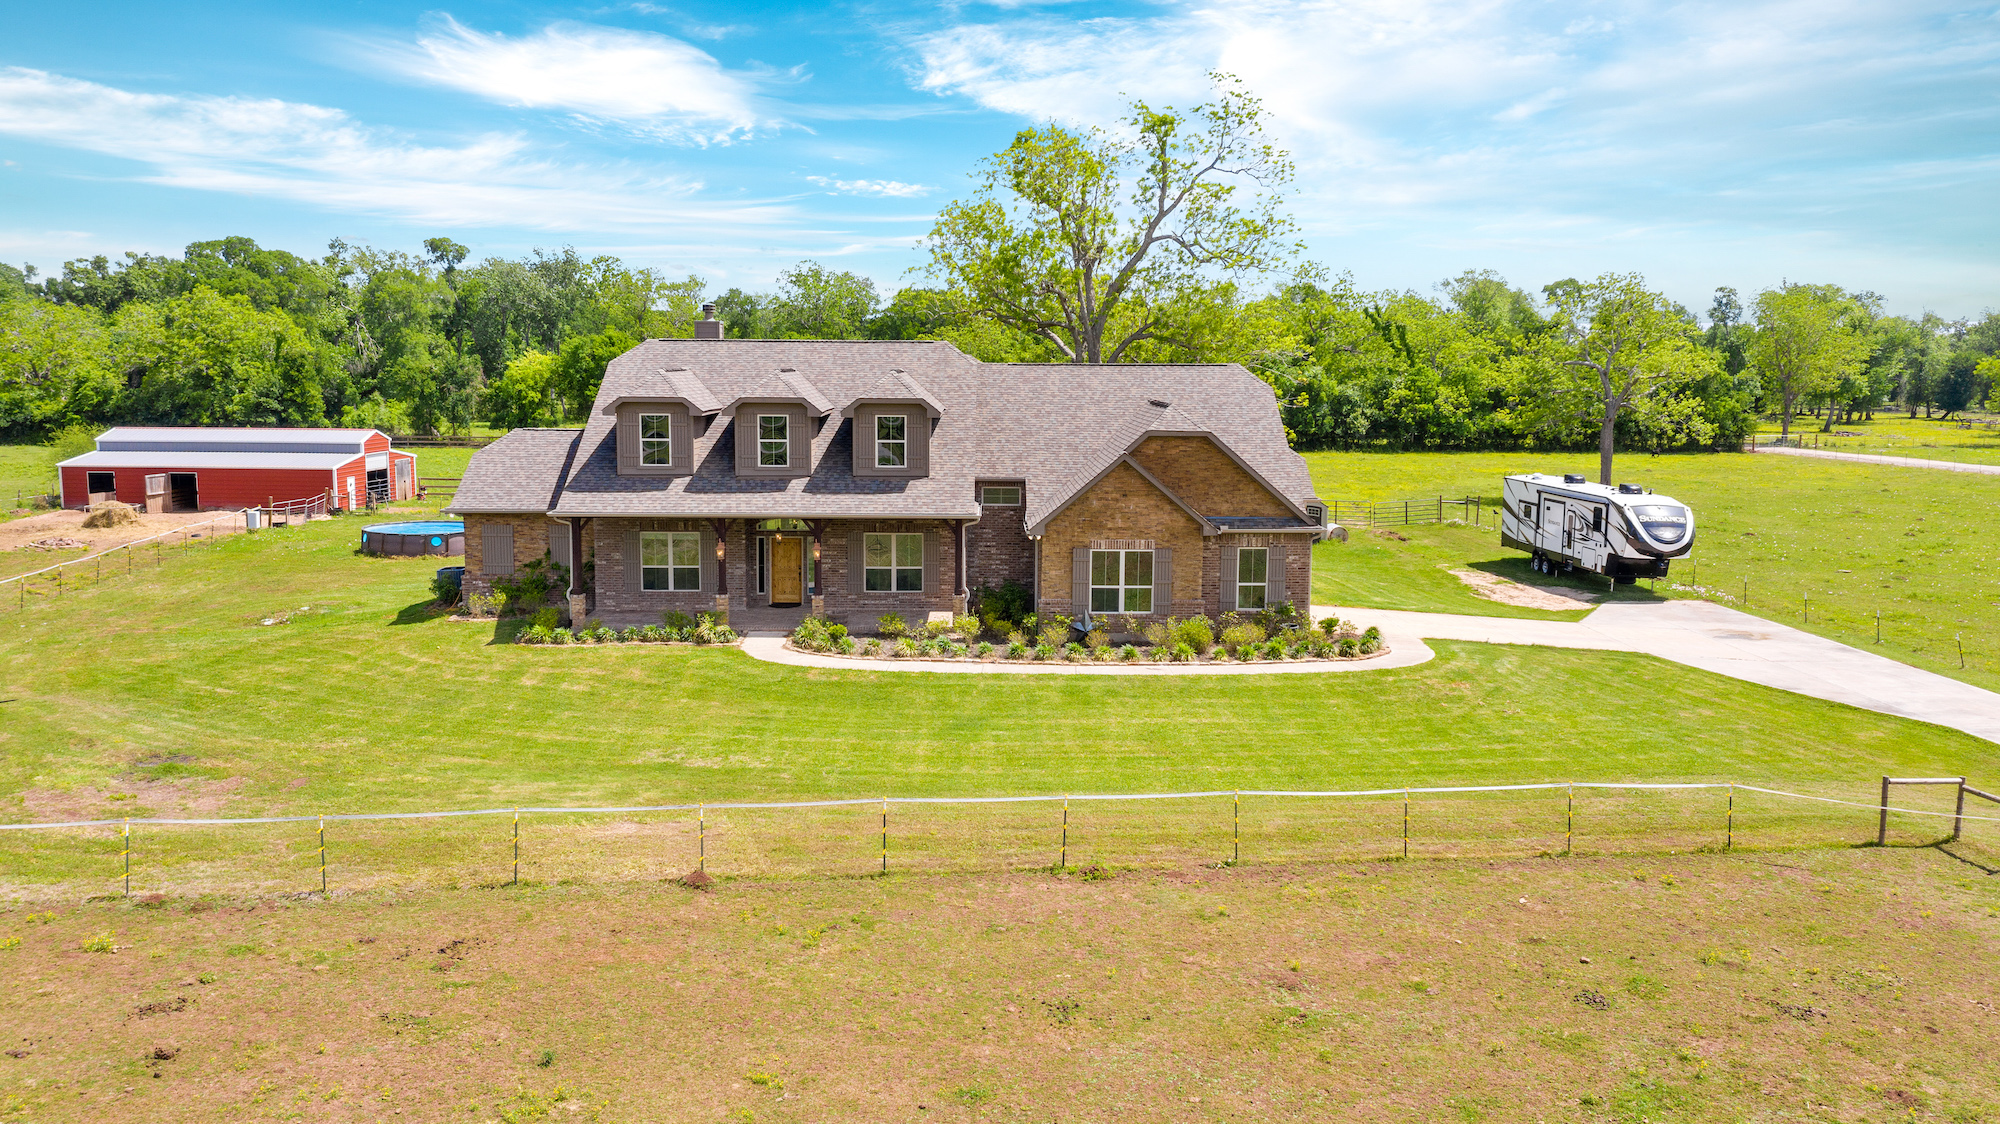 Custom Country Home with Acreage in Sealy - Image 10 of 46